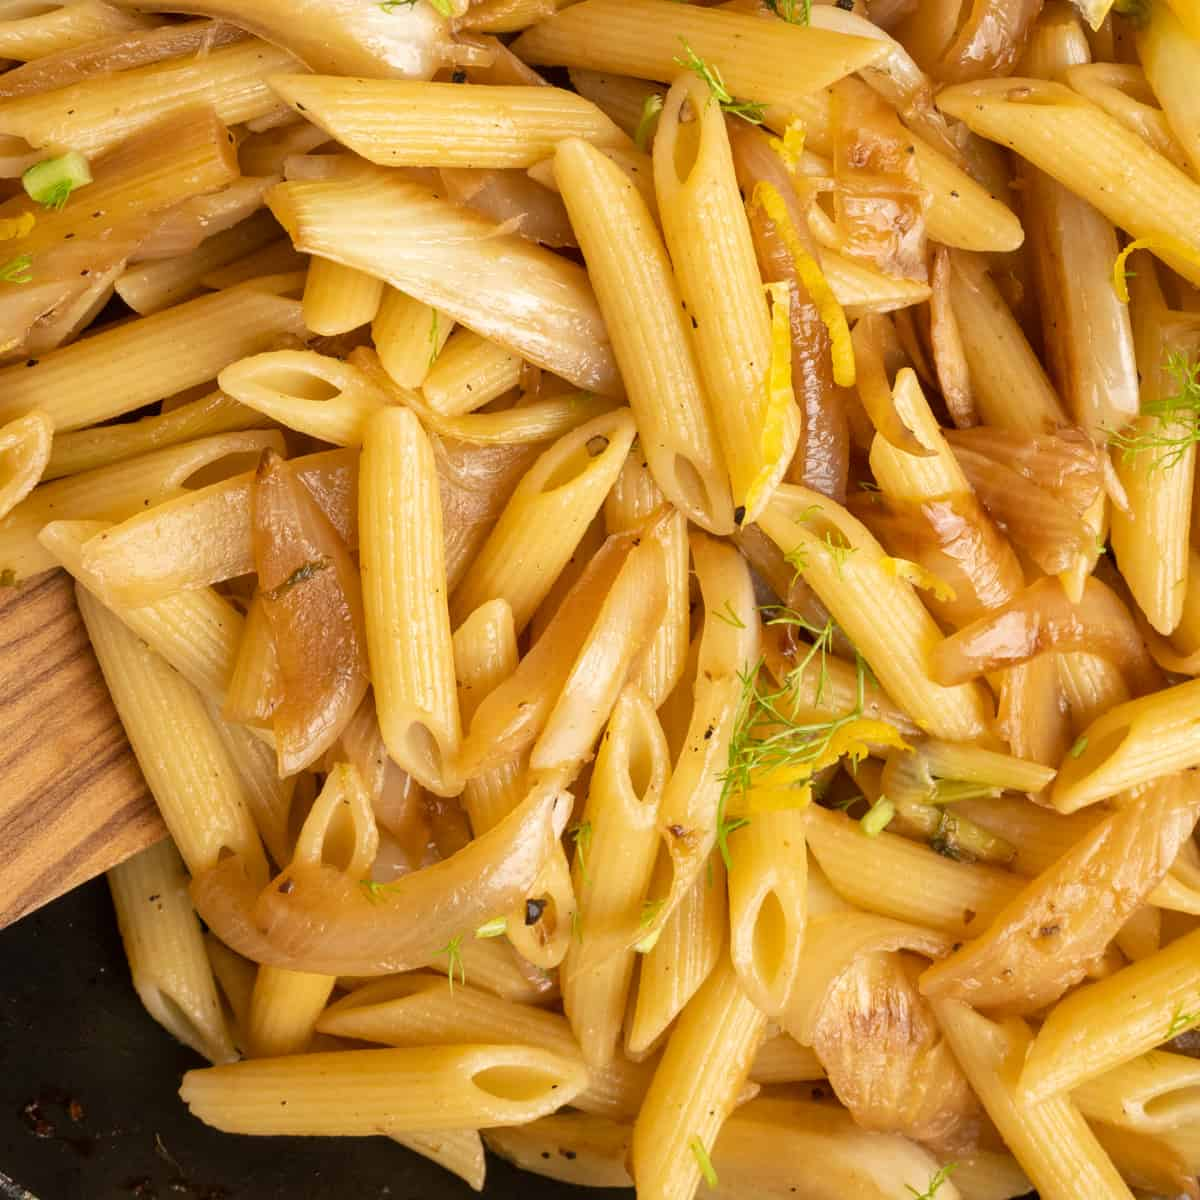 The pasta is stirred into the seasoned fried fennel and onion. The dish is finished by adding the chopped up fresh fennel fronds and some lemon peel.